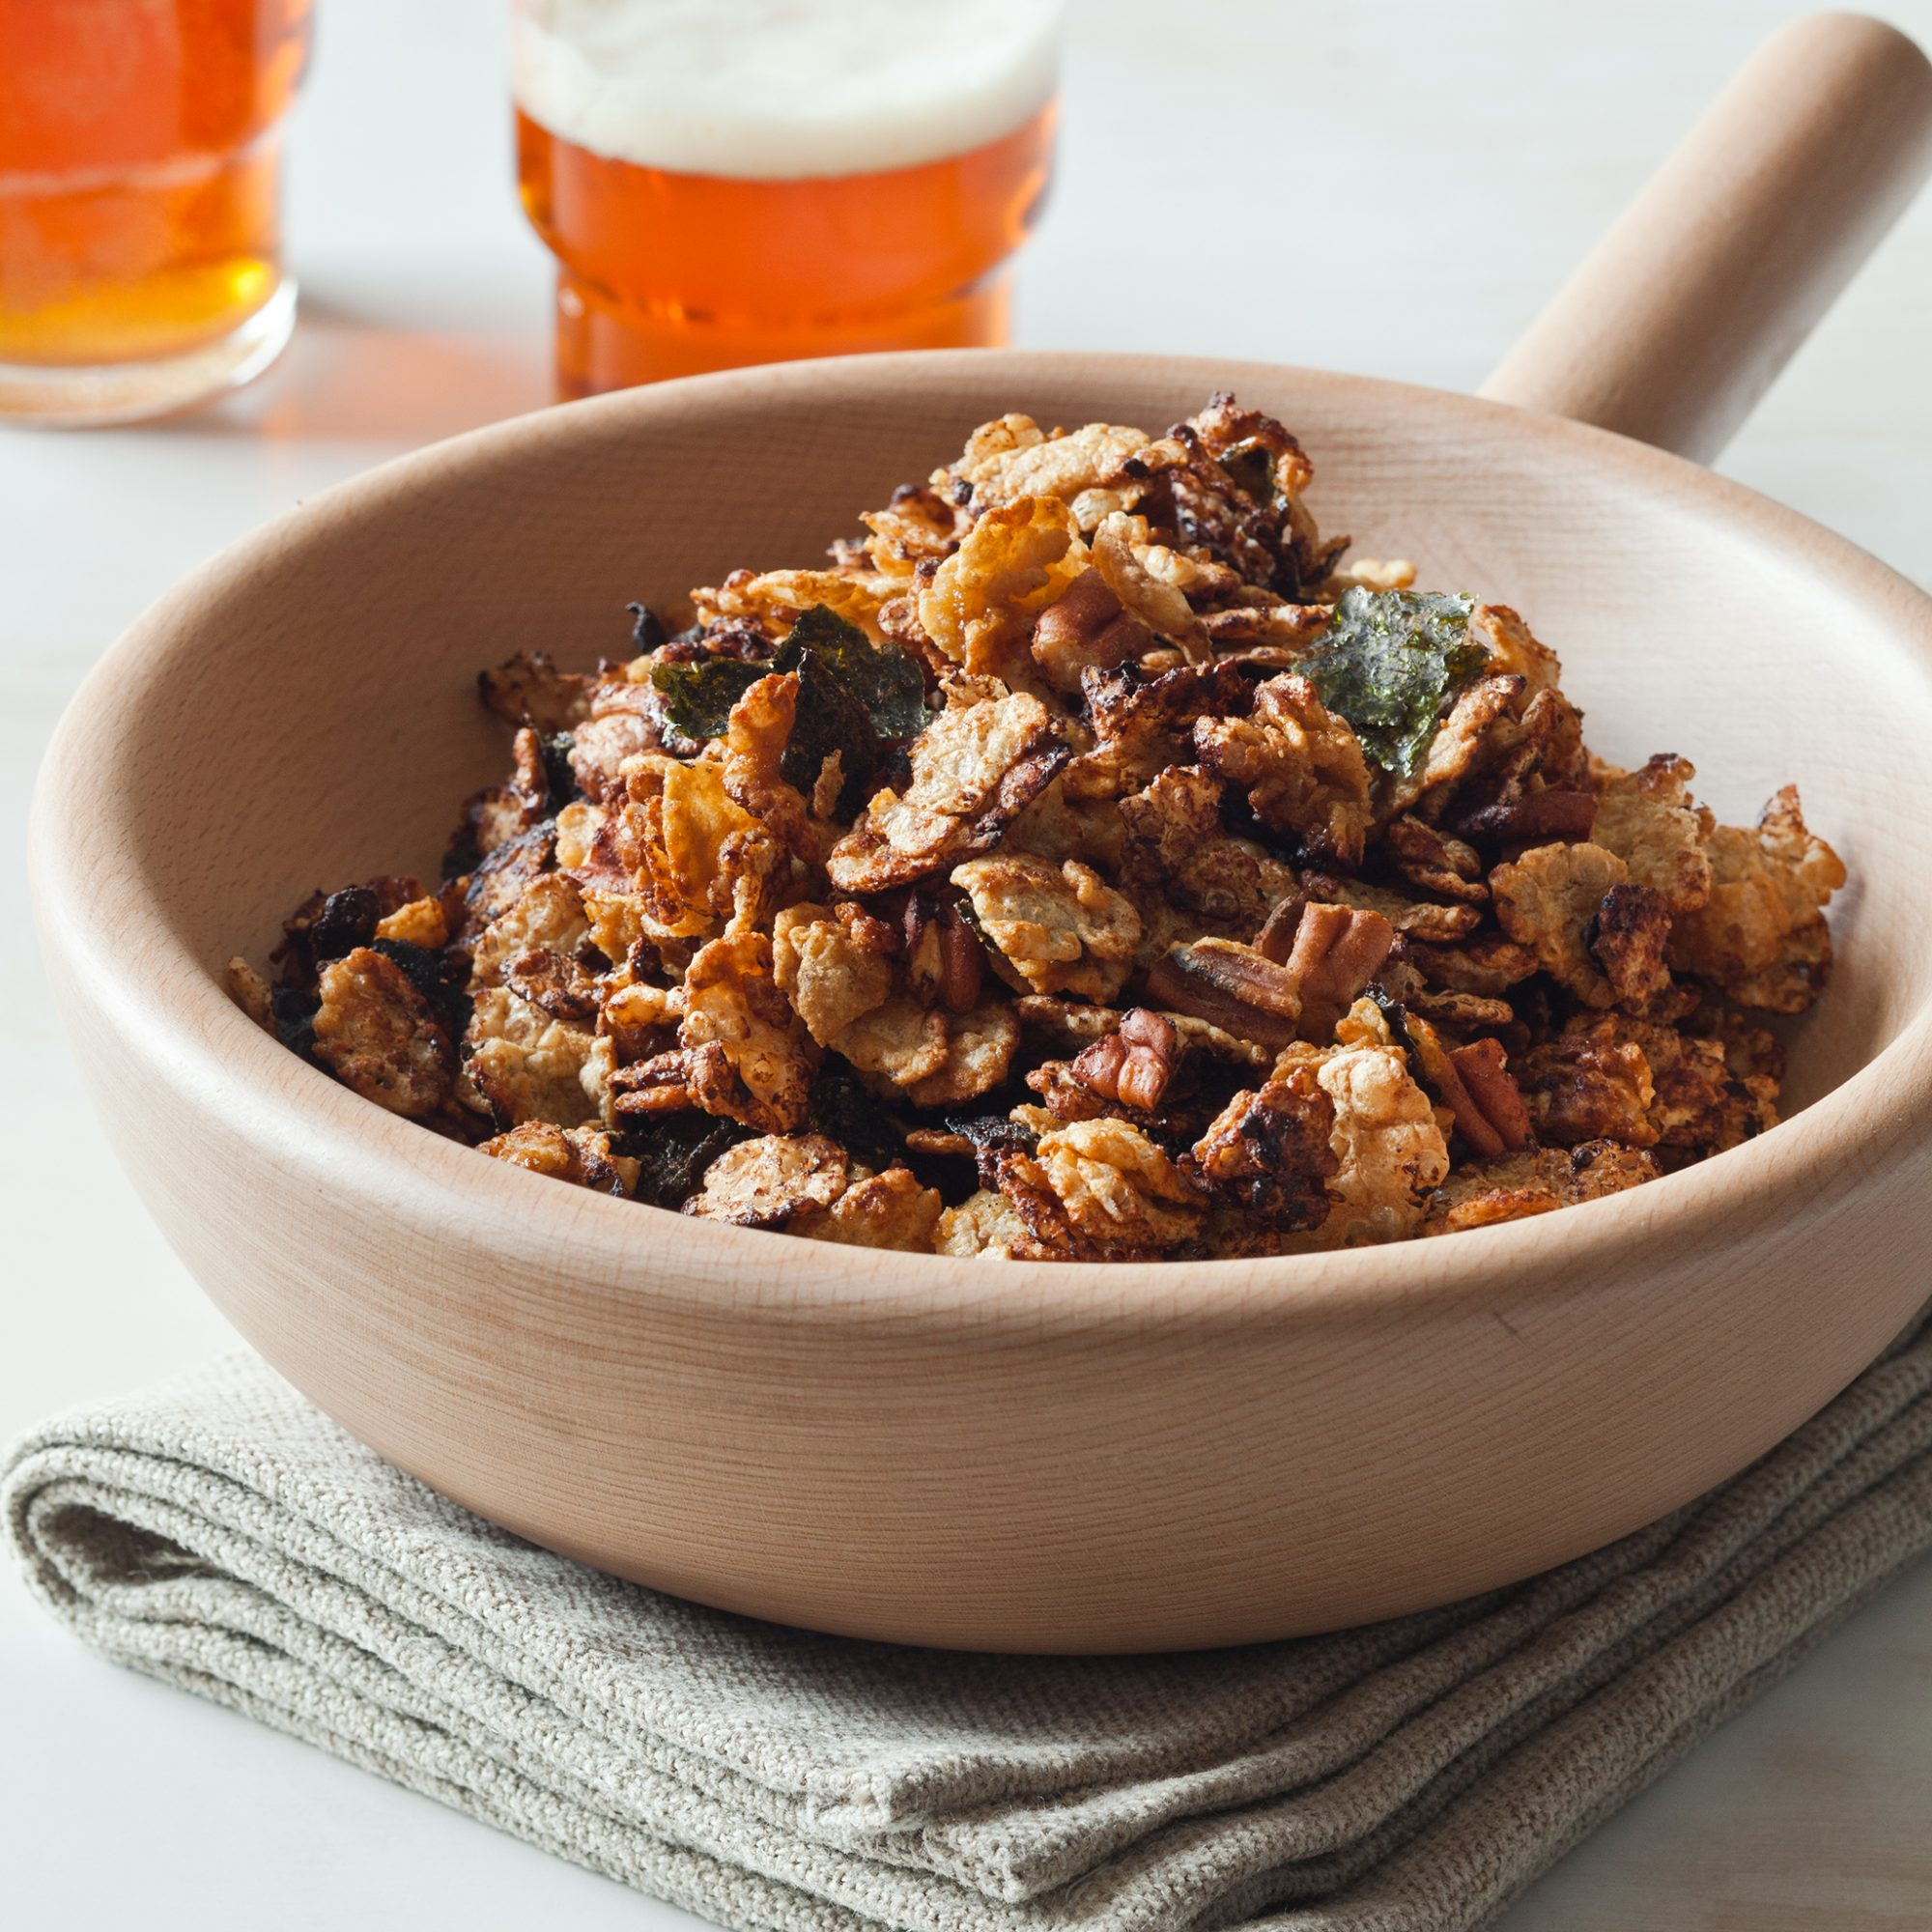 Asian Snack Mix with Nori